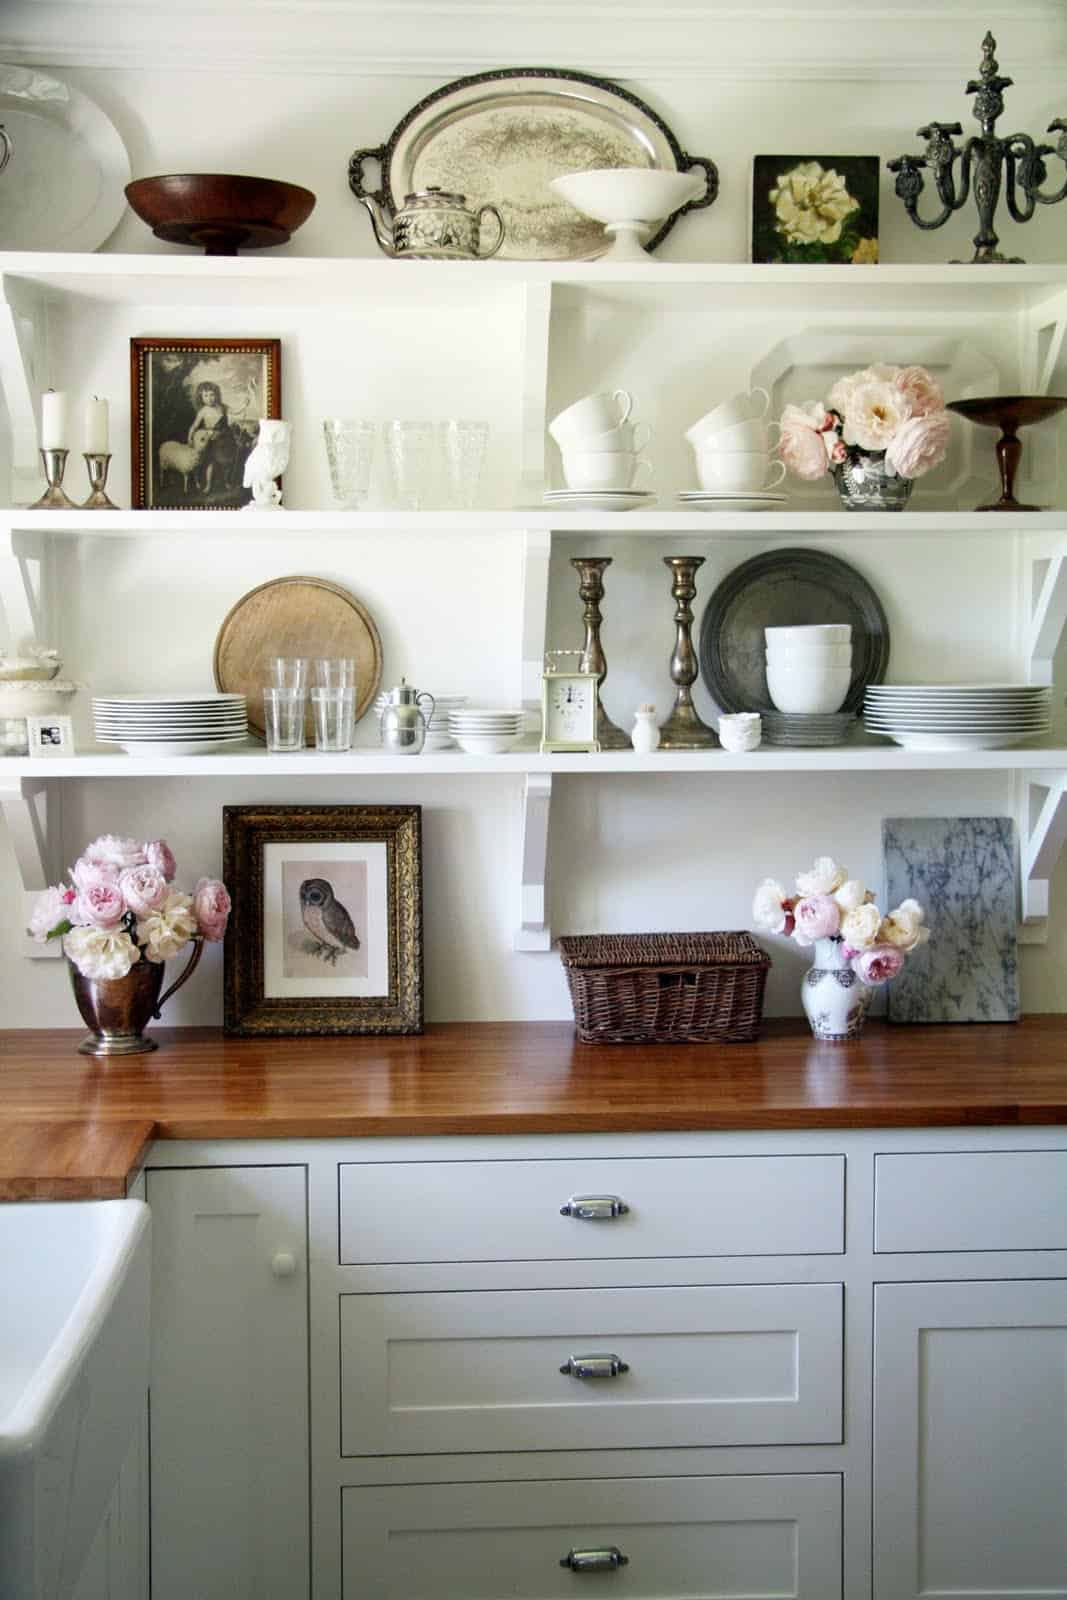 open shelving in kitchen with white shelves